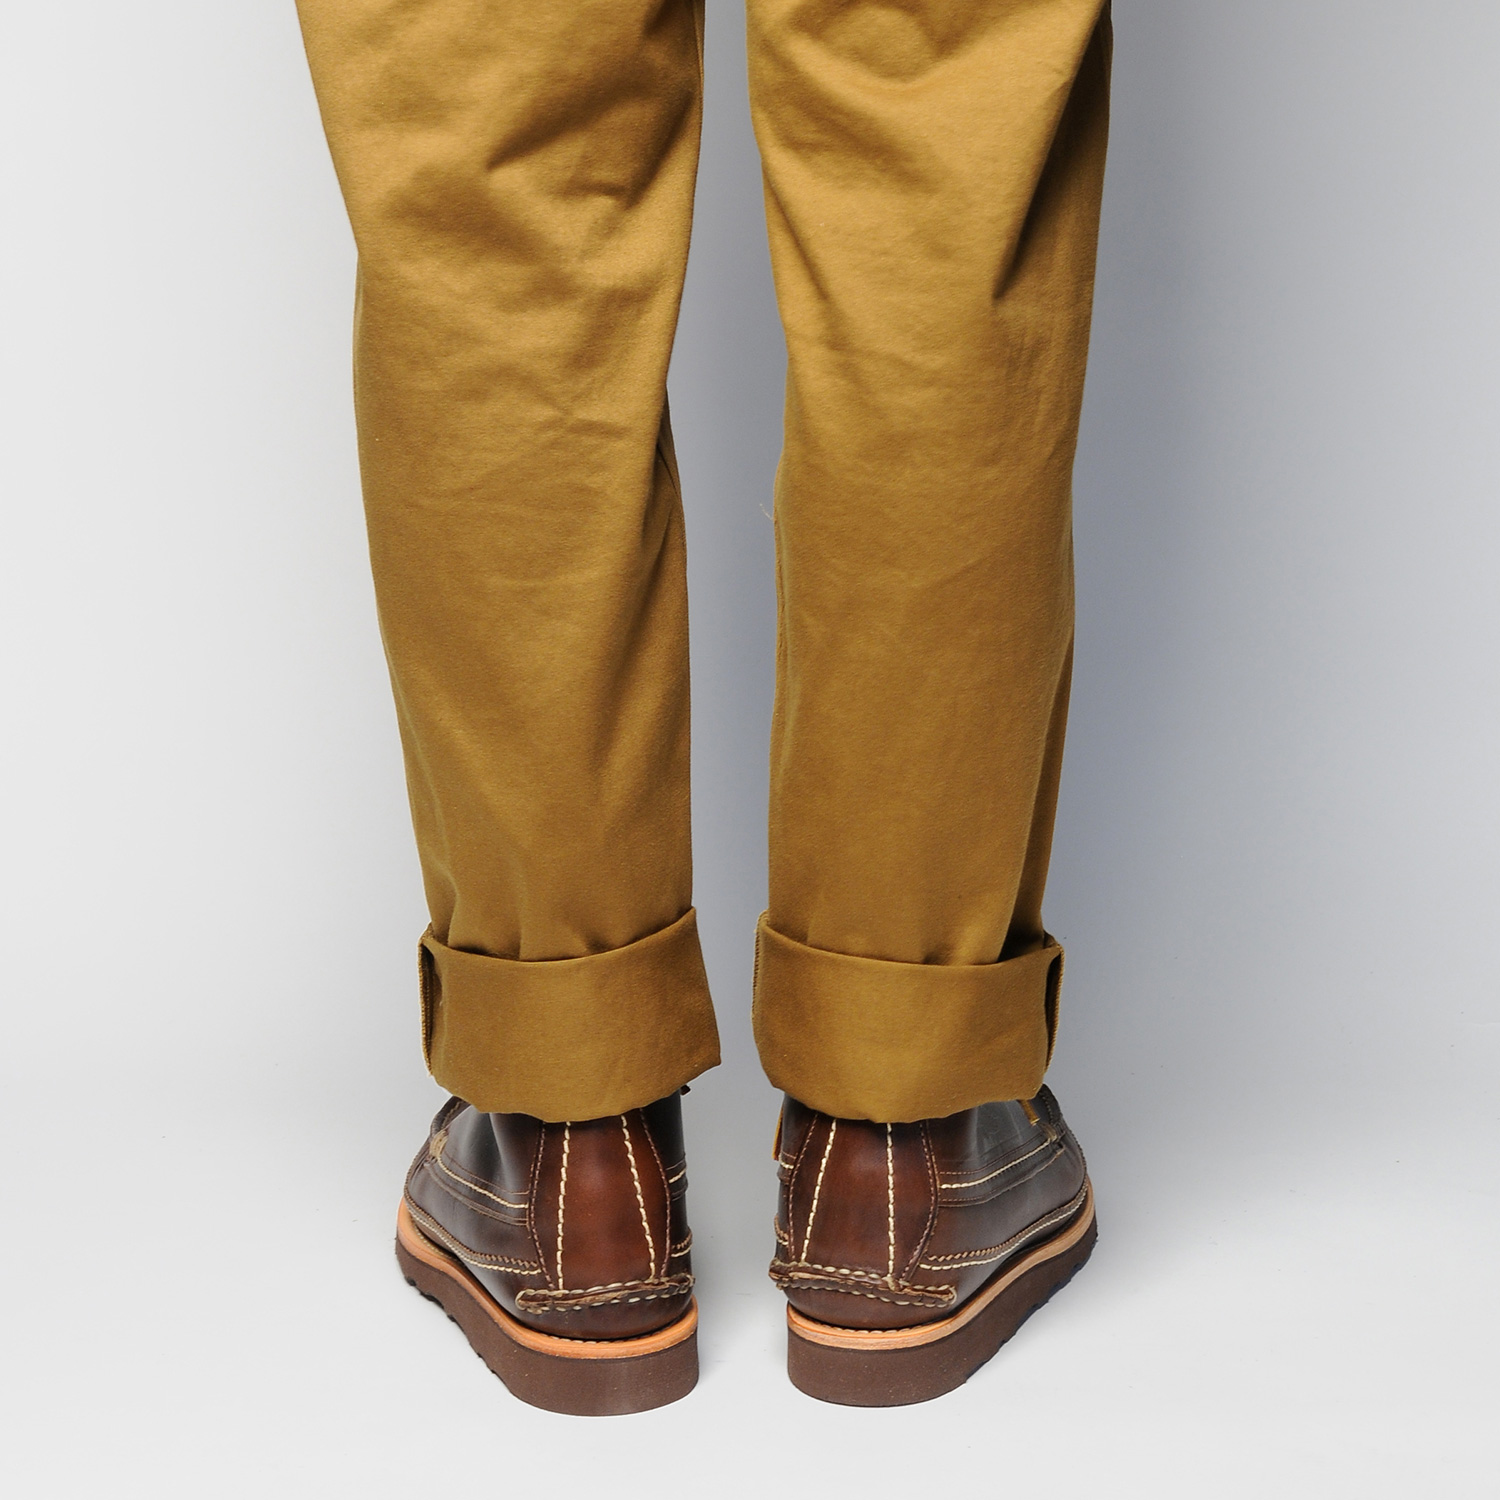 MAINE-GUIDE-DB-BOOTS,-G-BROWN,-WEAR-BACK-HIDE.jpg